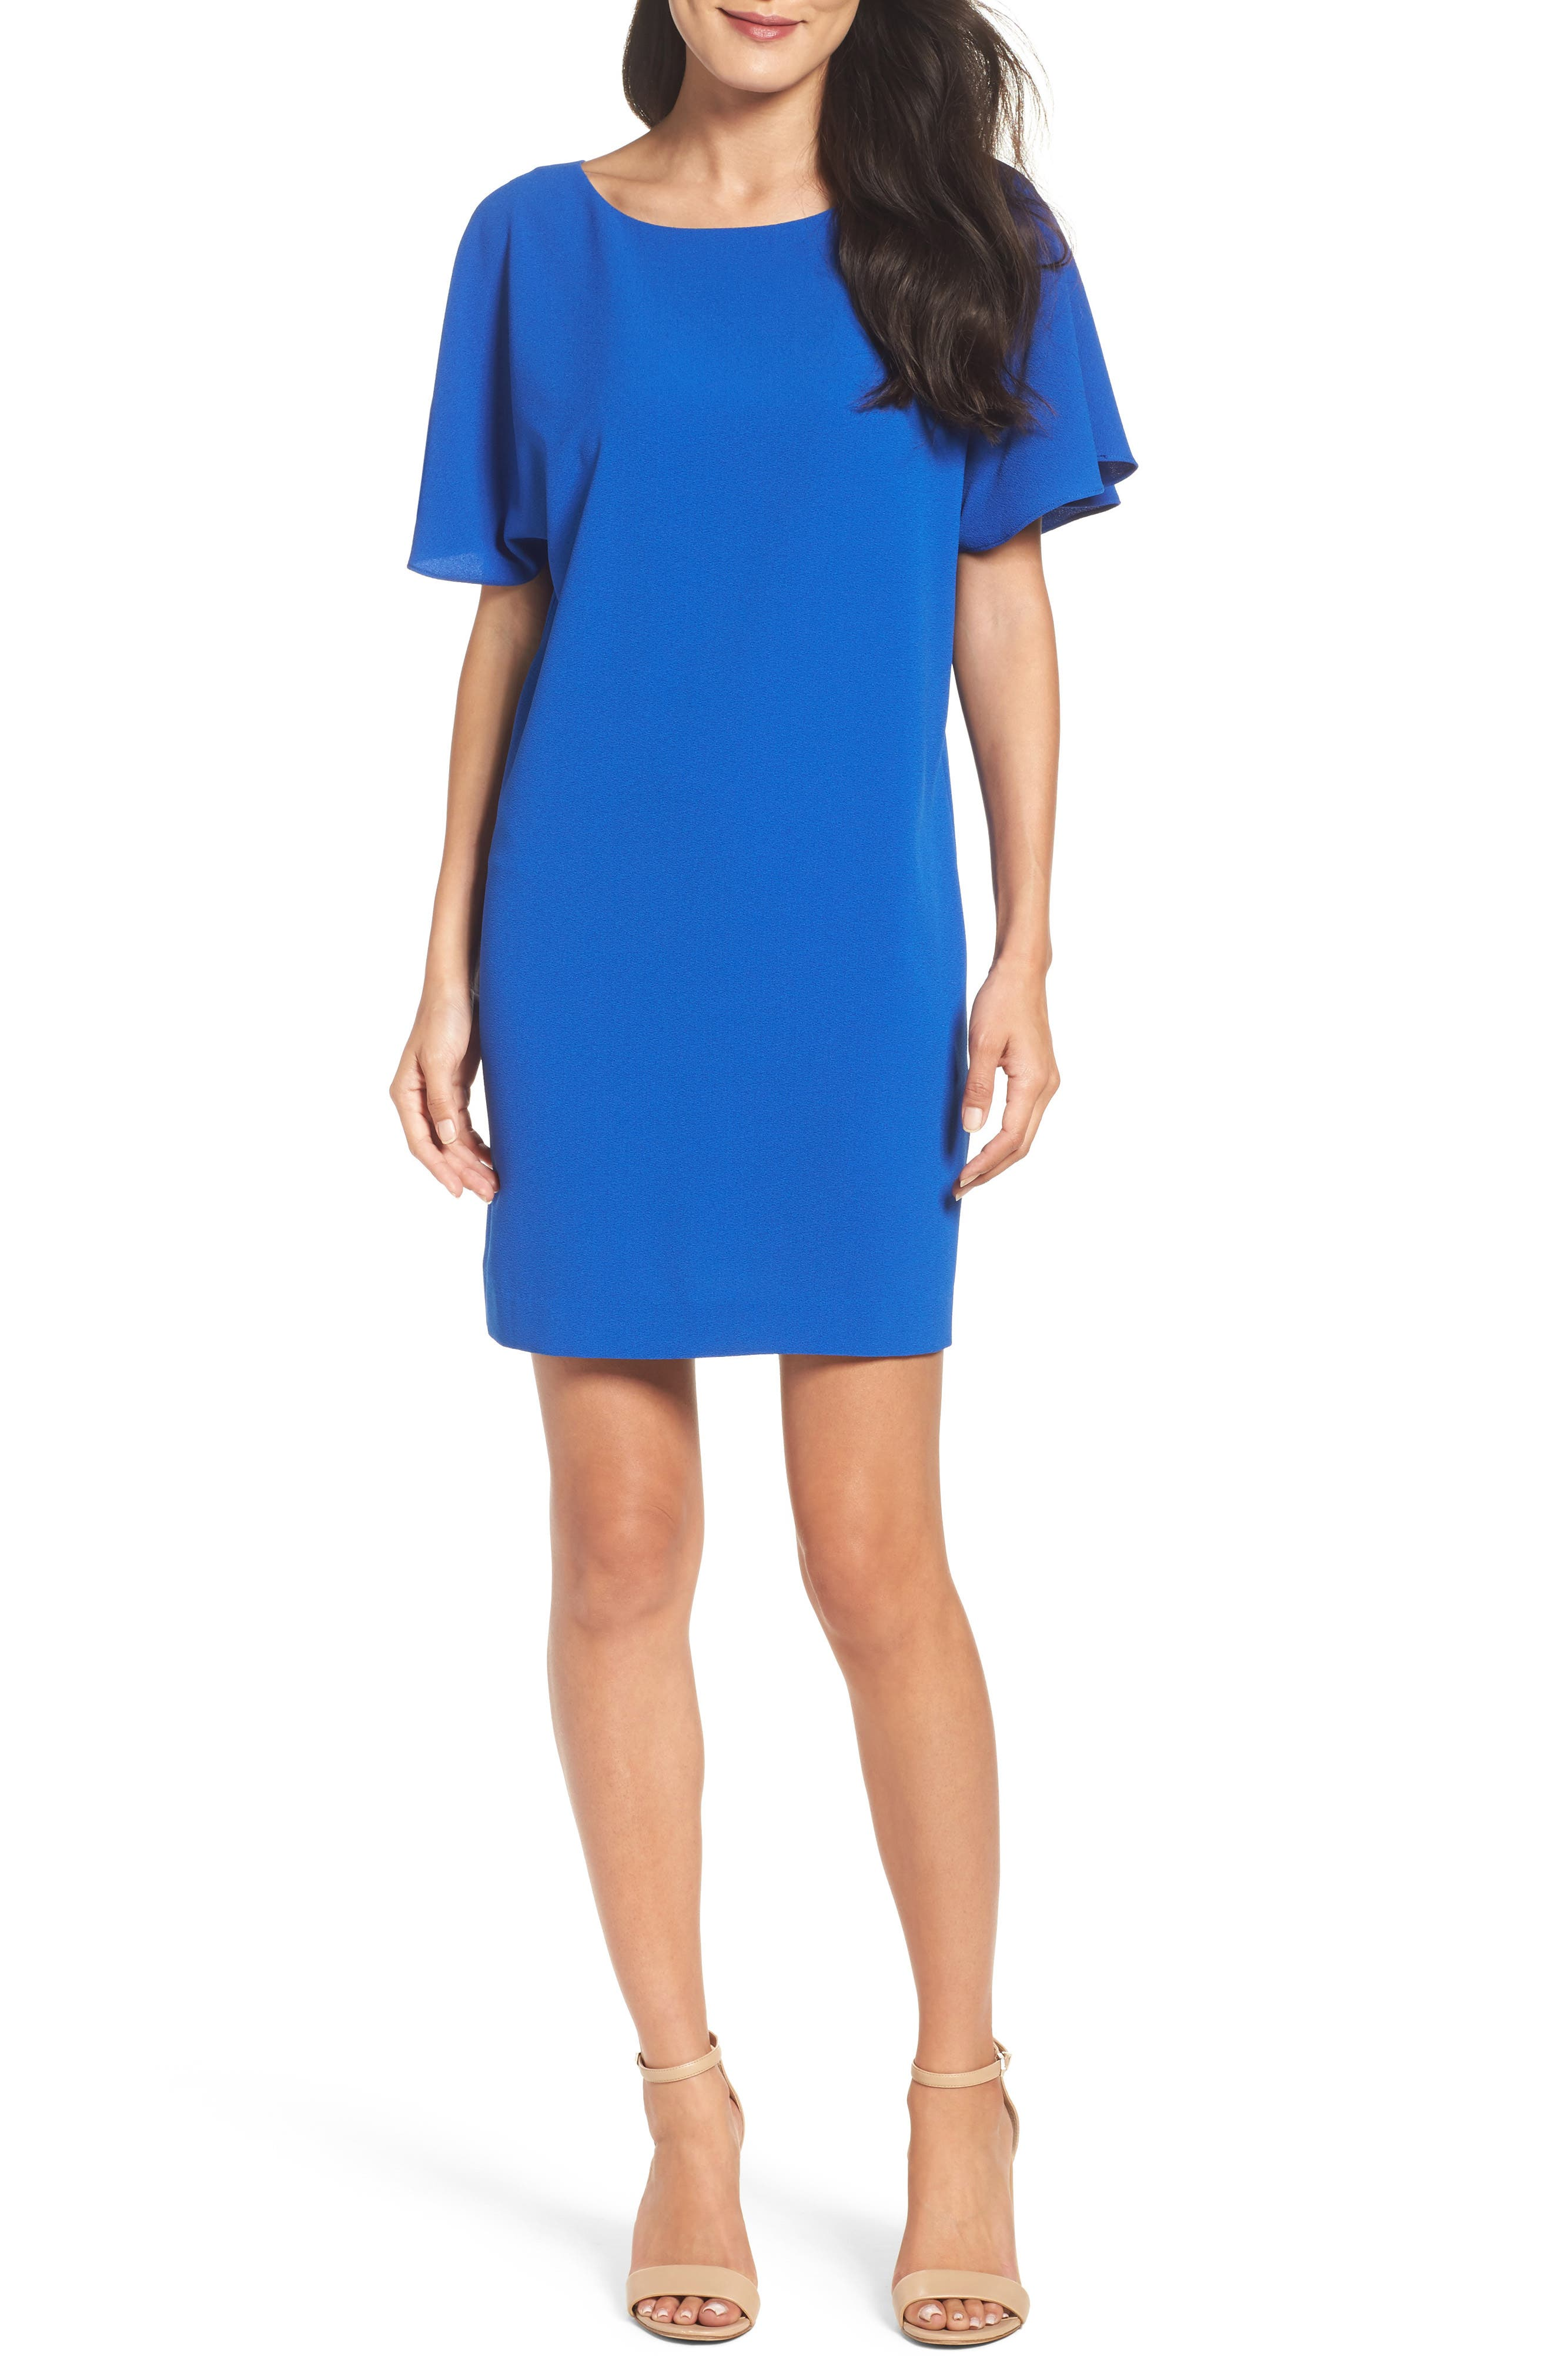 Alternate Image 1 Selected - Felicity & Coco Talia Ruffle Back Shift Dress (Nordstrom Exclusive)